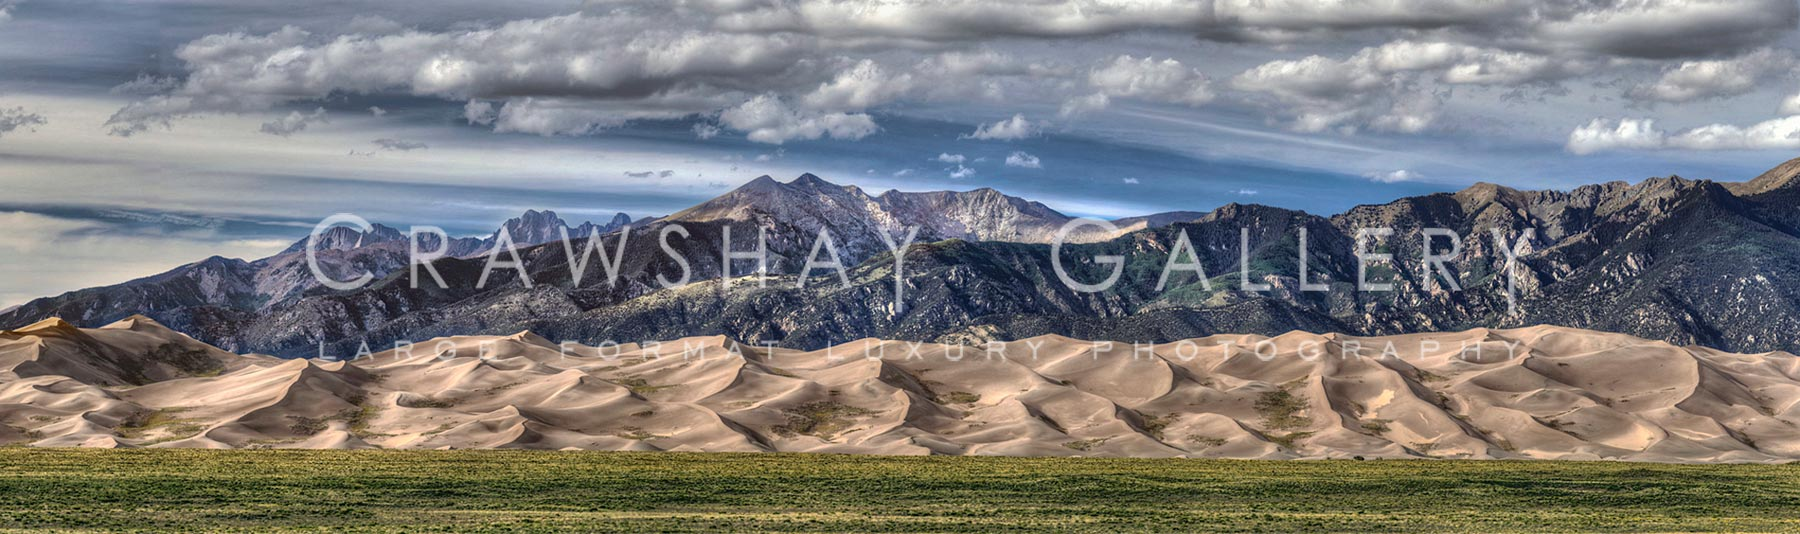 Rock mountains and huge sandunes - Colorado